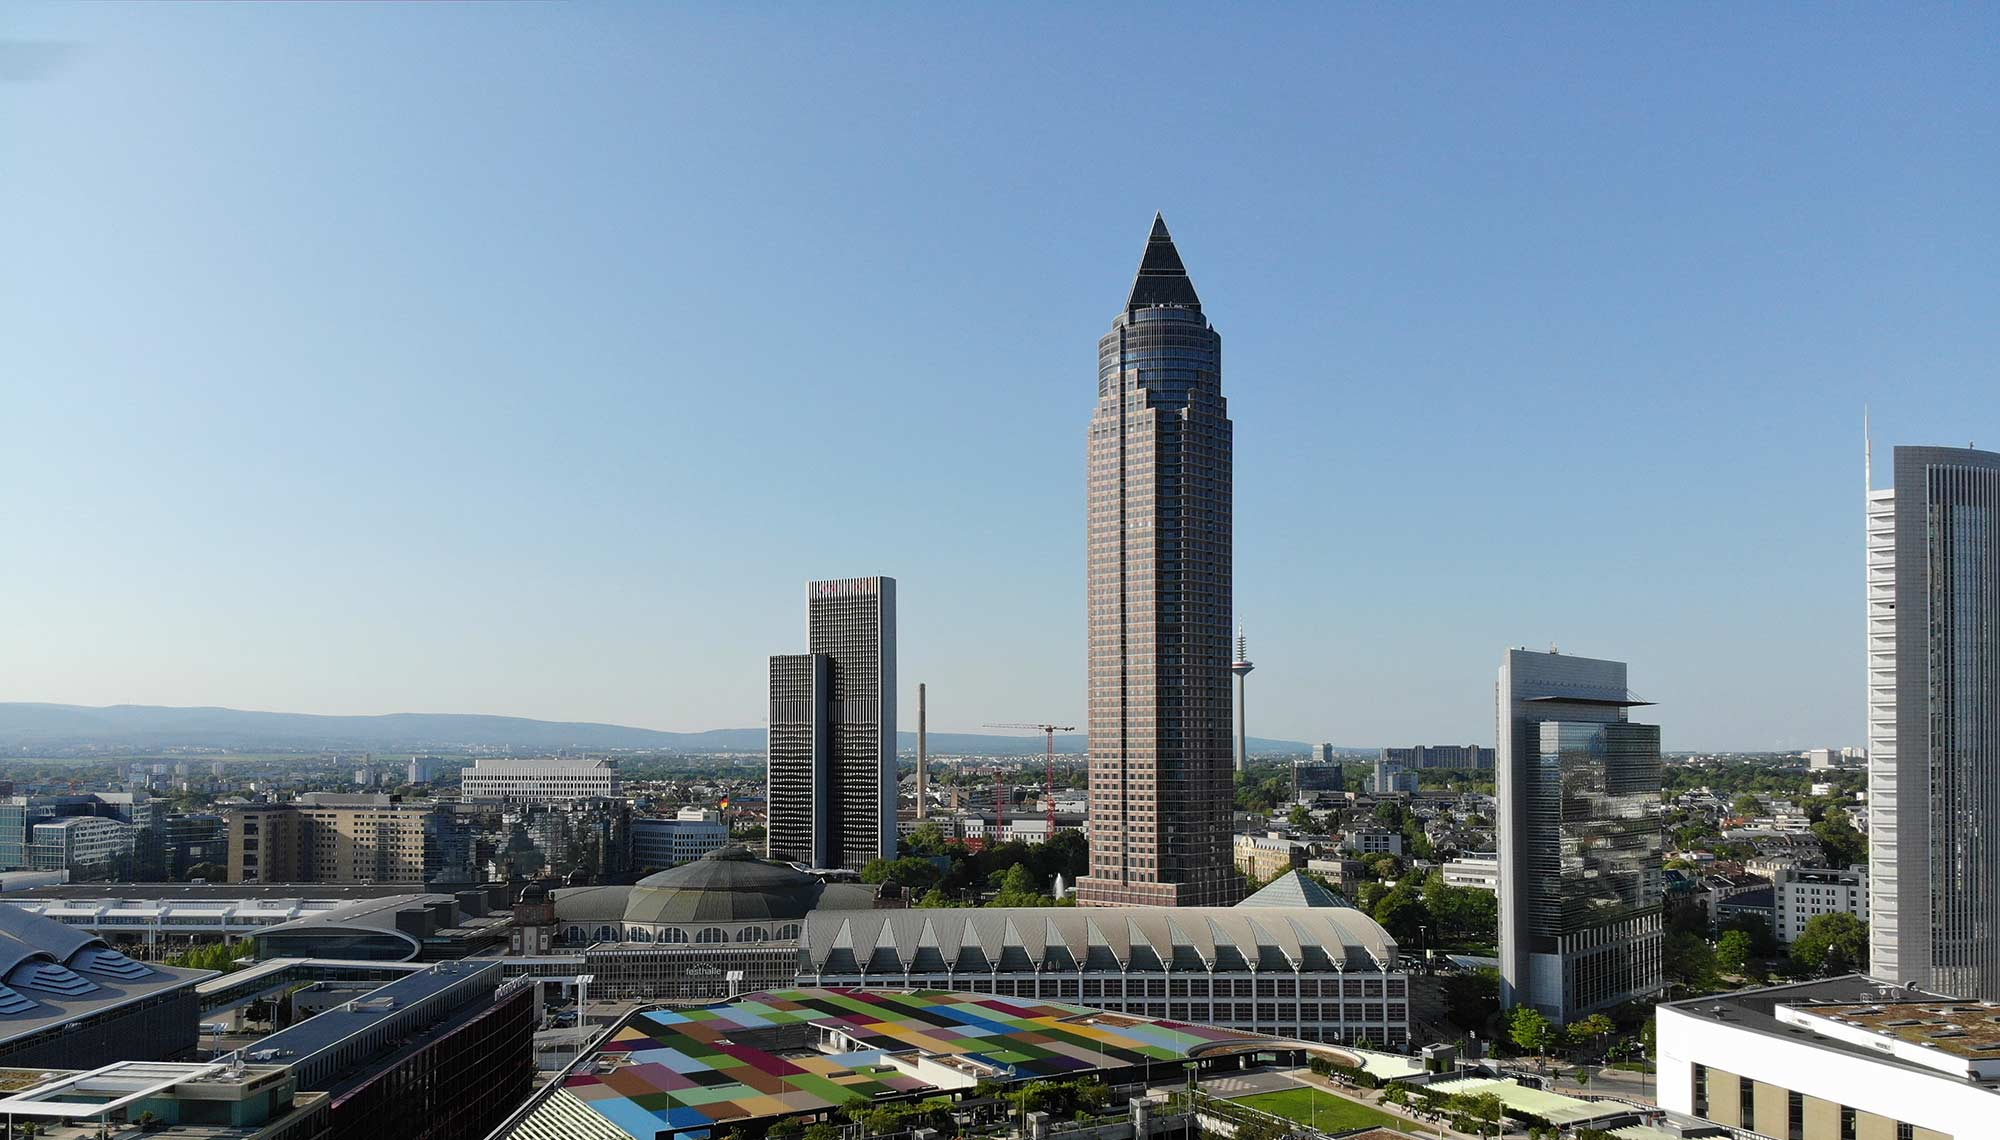 The MesseTurm will be renovated from April 2019